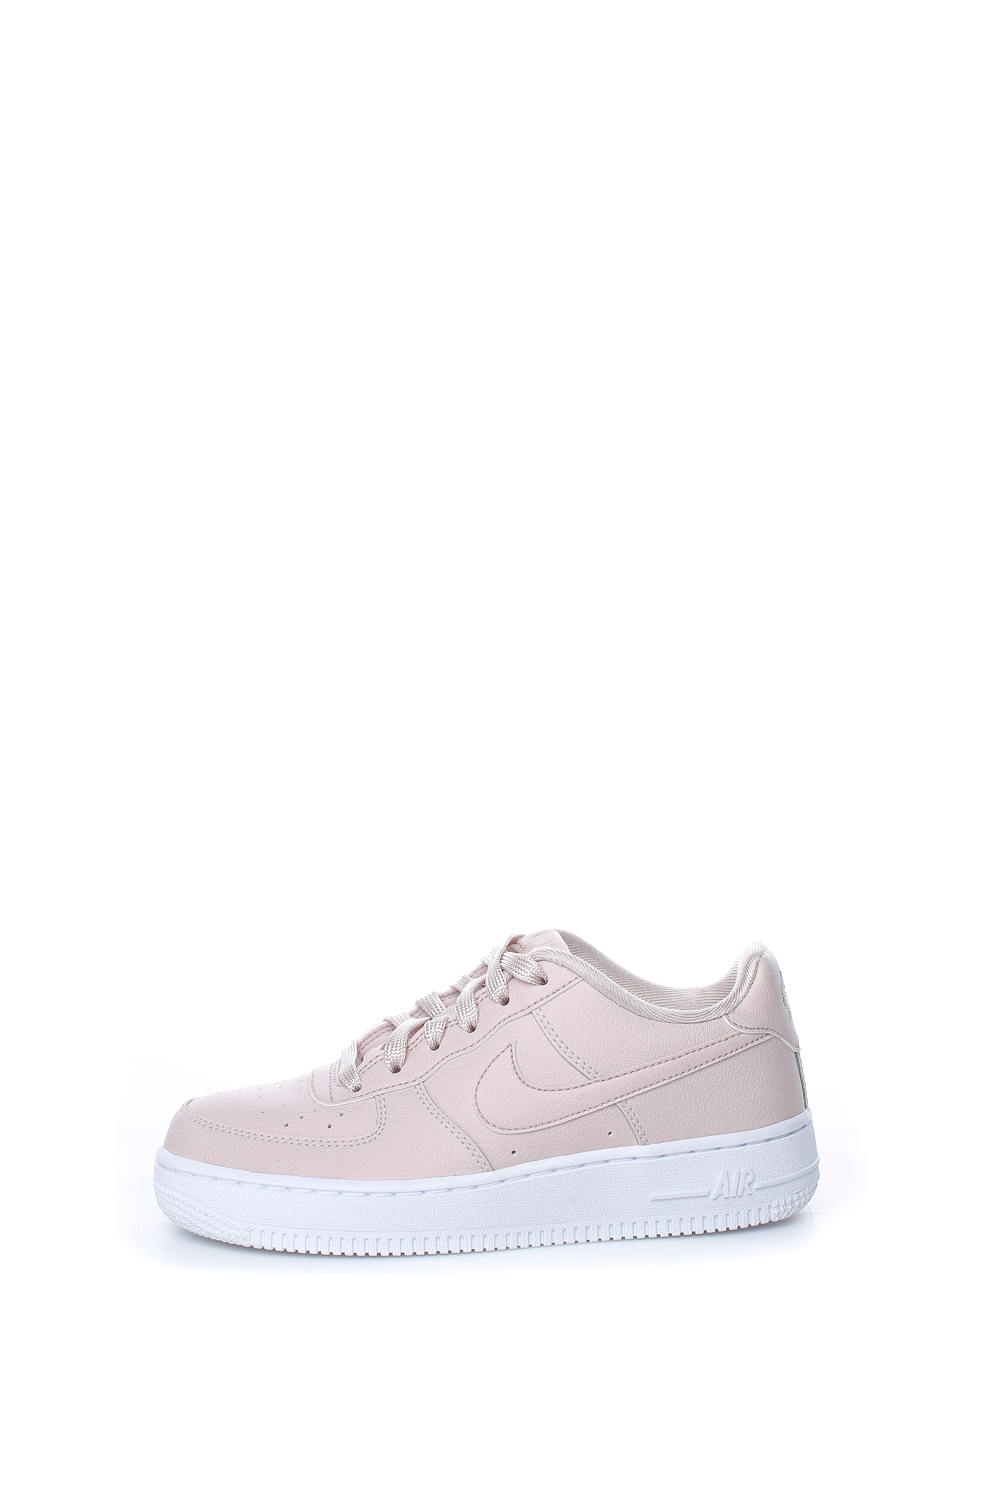 5a4273dd037 -30% Factory Outlet NIKE – Κοριτσίστικα παπούτσια NIKE AIR FORCE 1 SS (GS)  ροζ